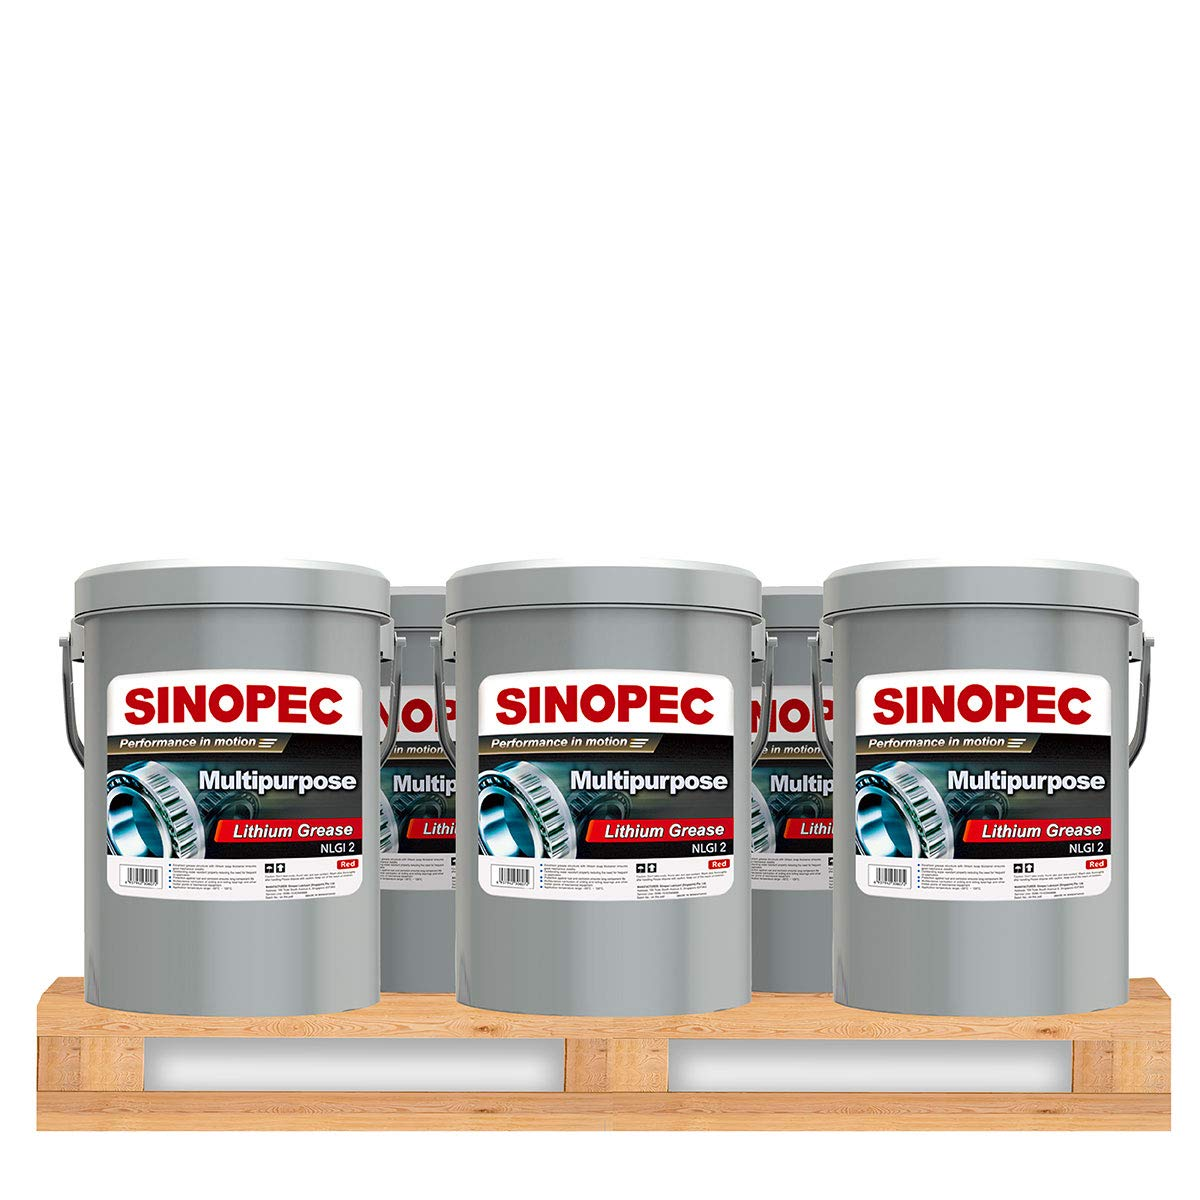 Sinopec Red Multipurpose Lithium Grease #2-35LB. (5 Gallon) Pail (12) by Sinopec (Image #1)